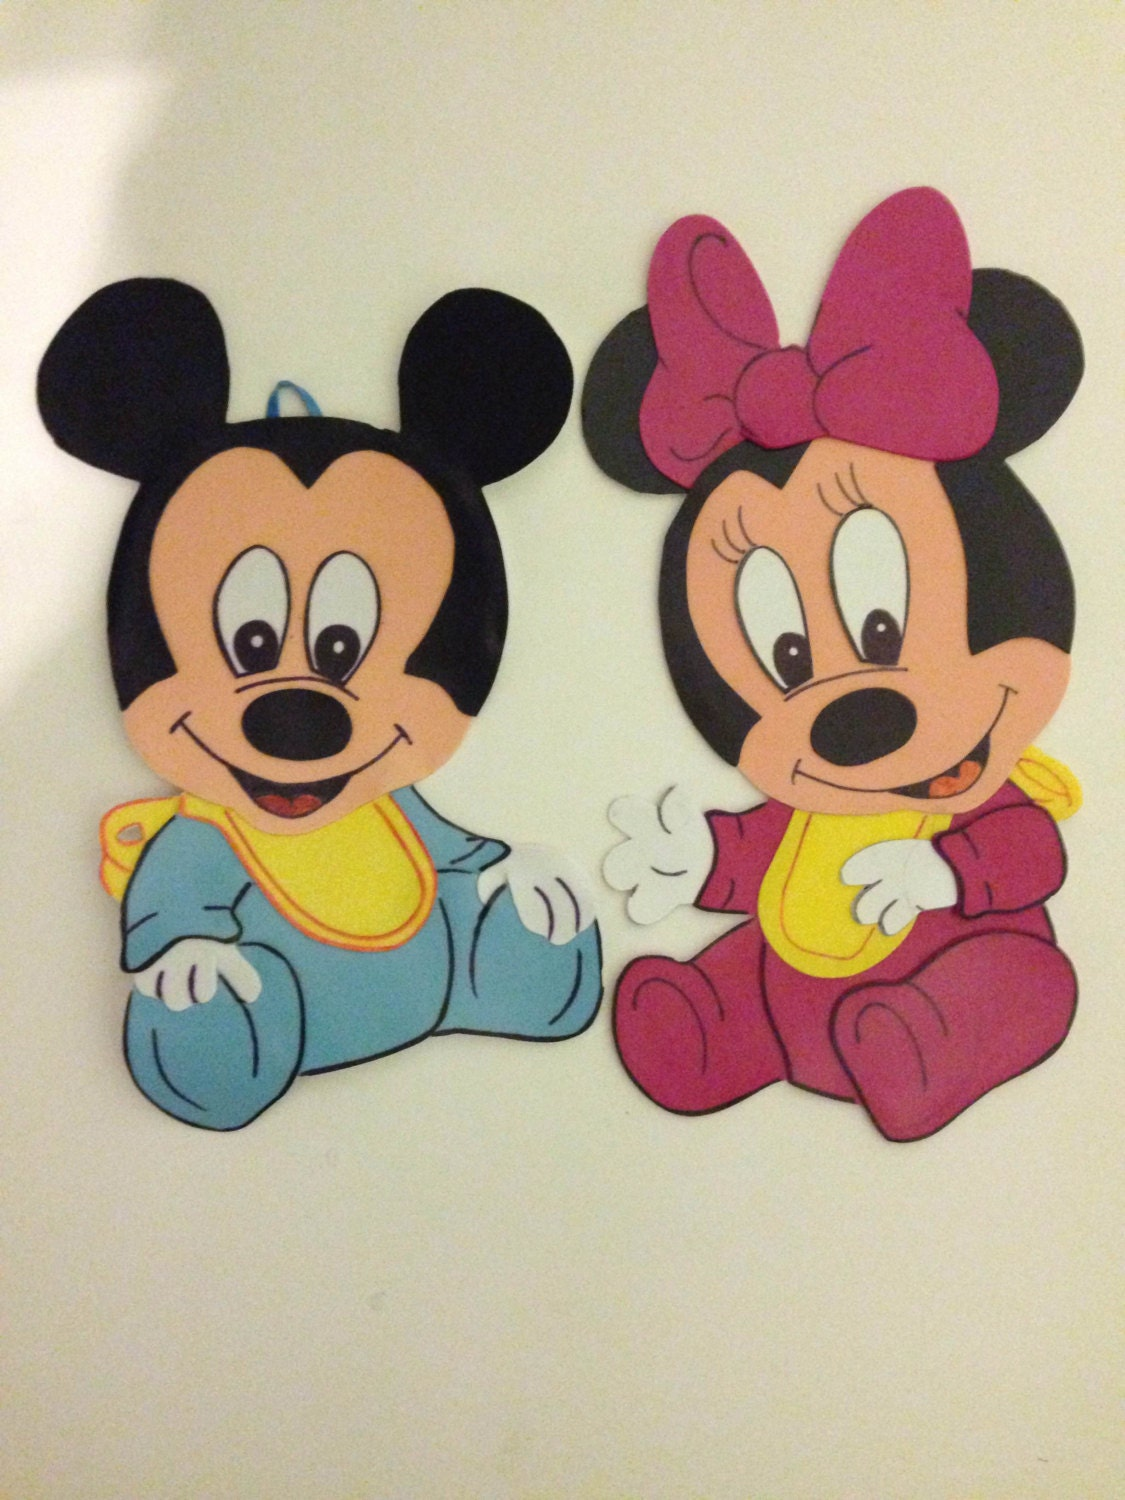 Baby mickey mouse and minnie mouse set of 2 wall decoration for Baby mickey mouse decoration